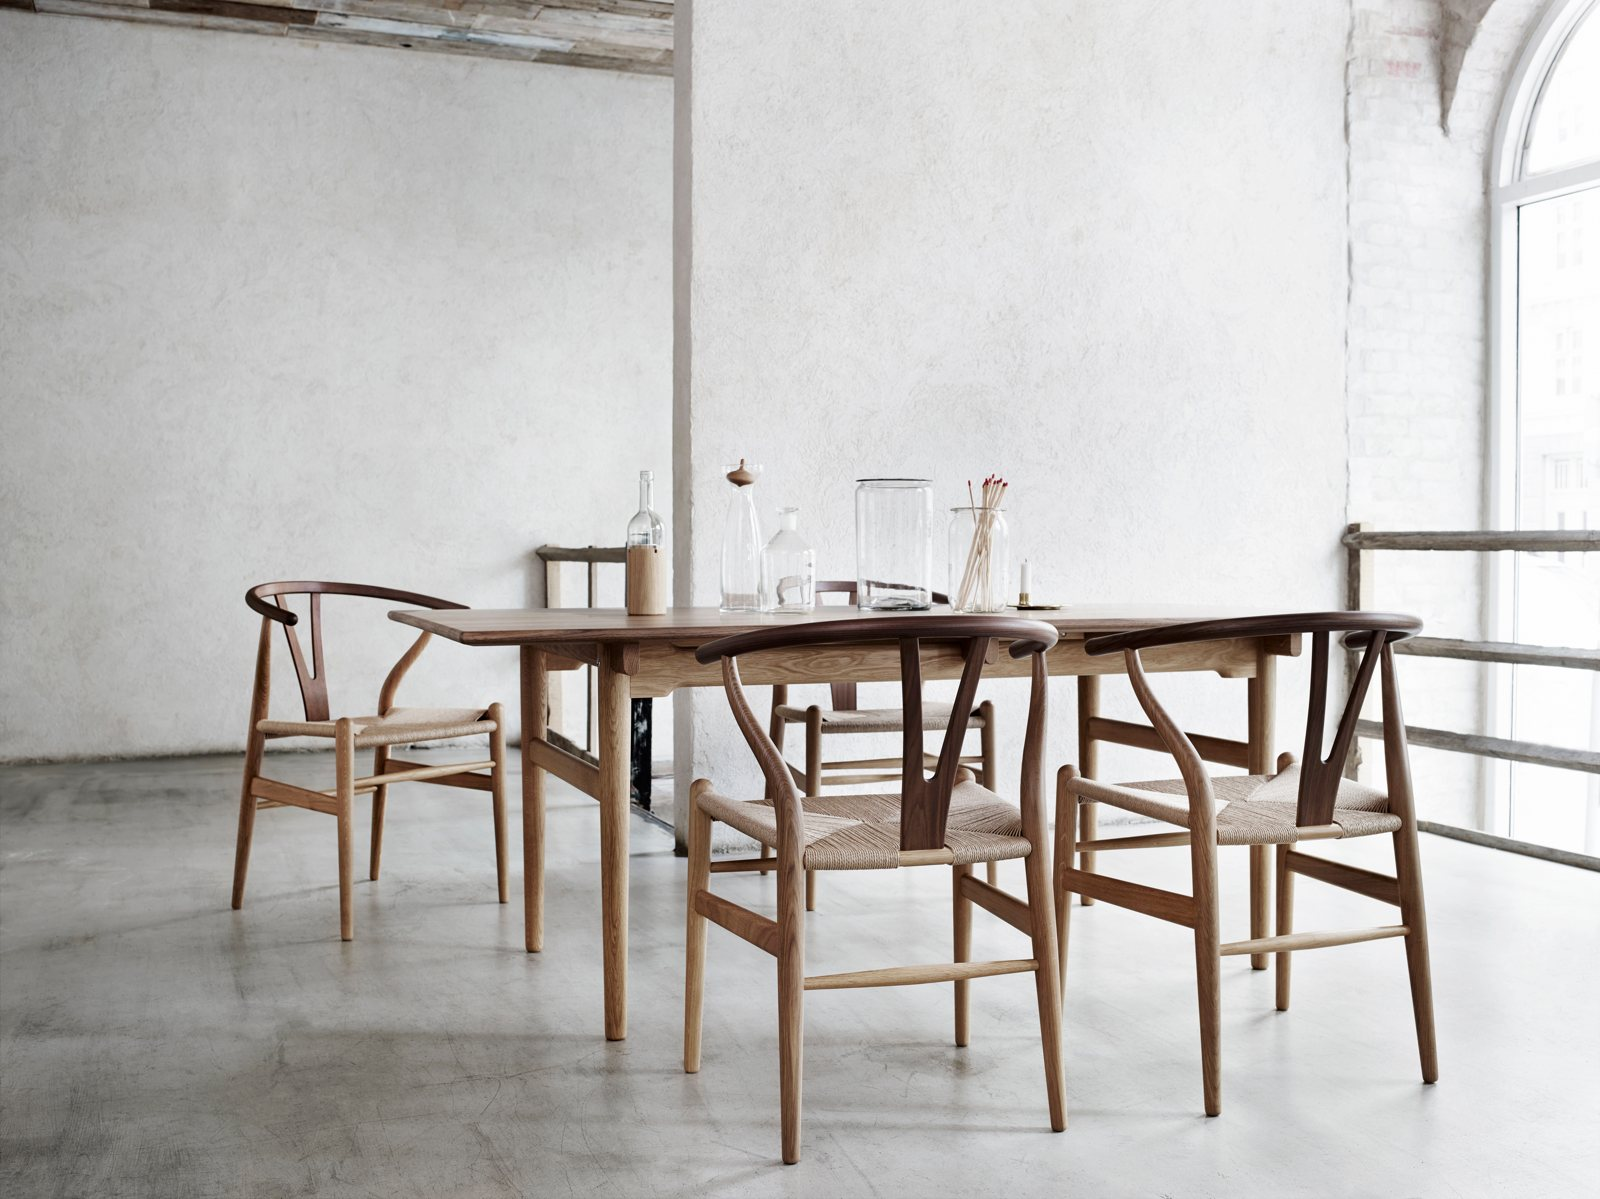 ch24 wishbone chair by hans j wegner for carl hansen søn up